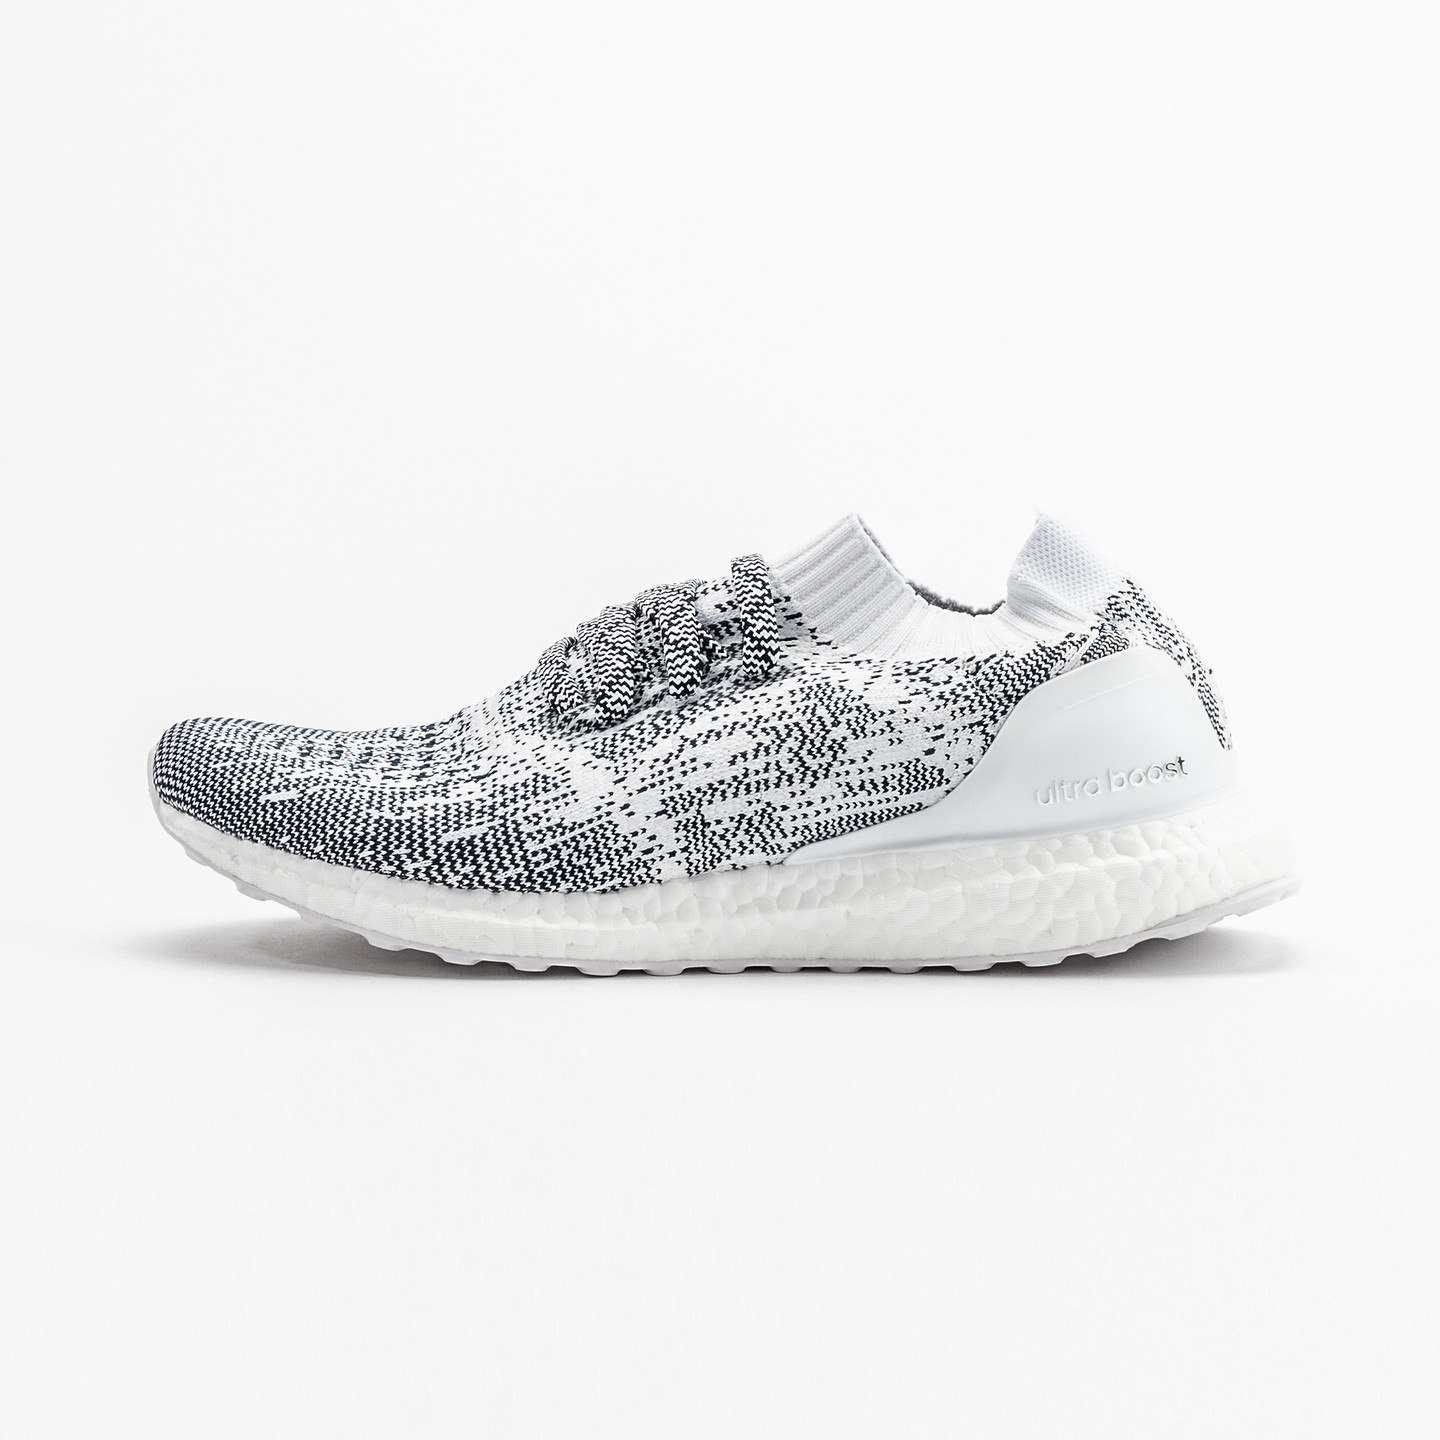 Adidas Ultra Boost Uncaged 'Oreo' White / Black BA9616